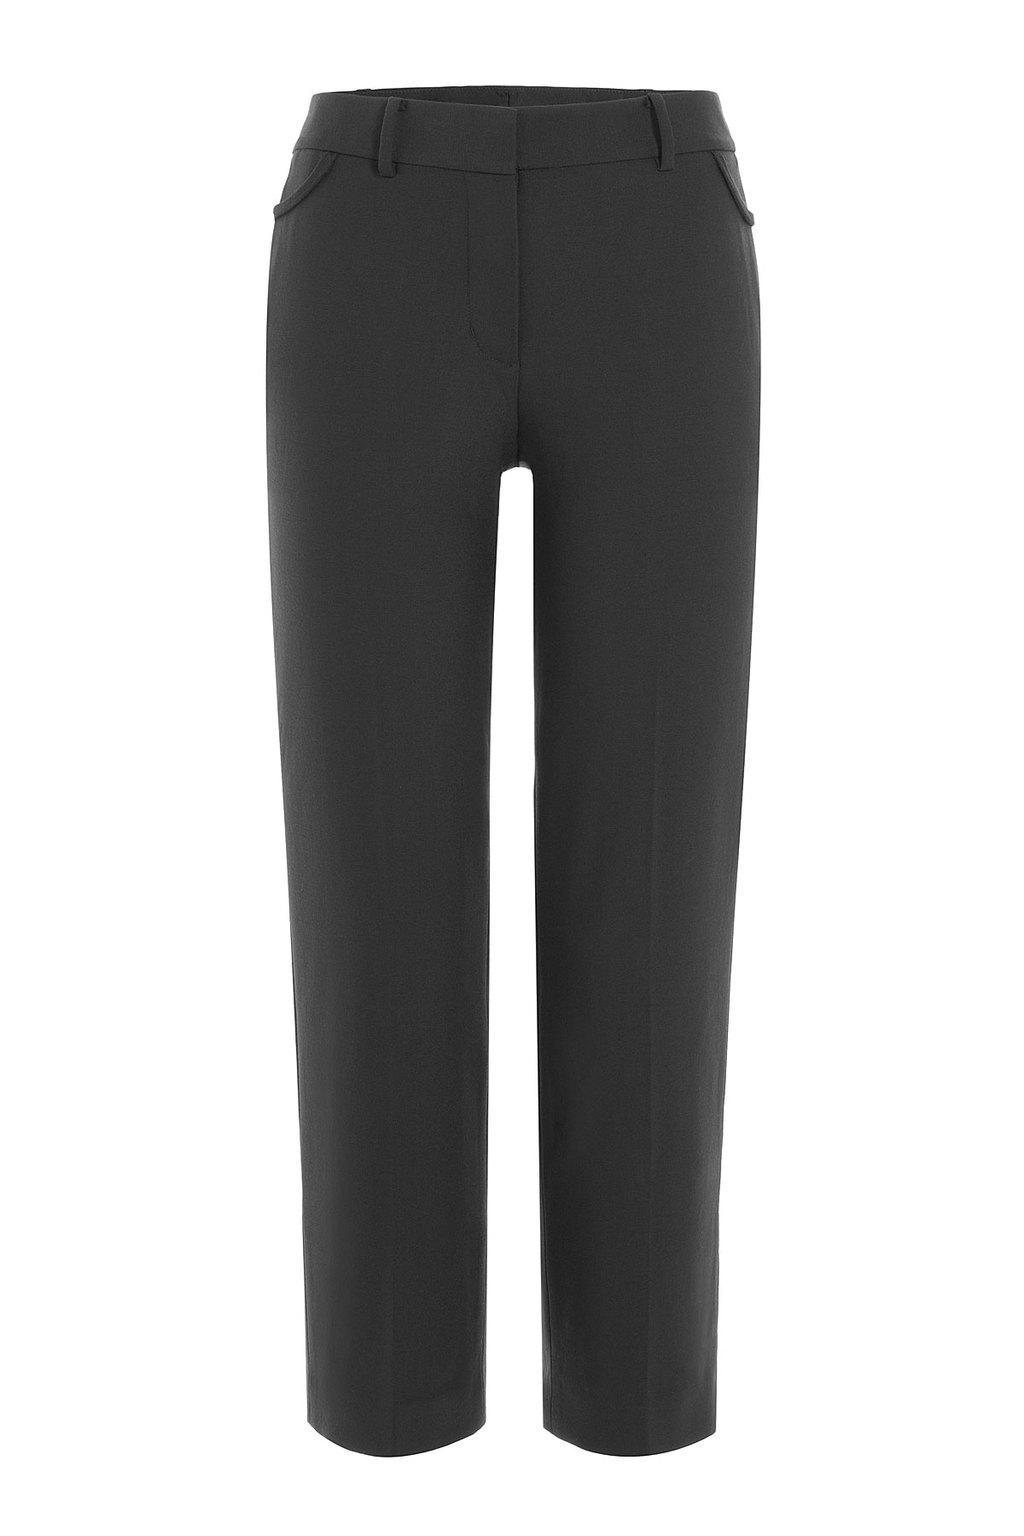 Cropped Cotton Pants - pattern: plain; pocket detail: pockets at the sides; hip detail: draws attention to hips; waist: mid/regular rise; predominant colour: charcoal; occasions: casual, evening, creative work; length: ankle length; fibres: cotton - stretch; fit: straight leg; pattern type: fabric; texture group: woven light midweight; style: standard; season: a/w 2015; wardrobe: basic